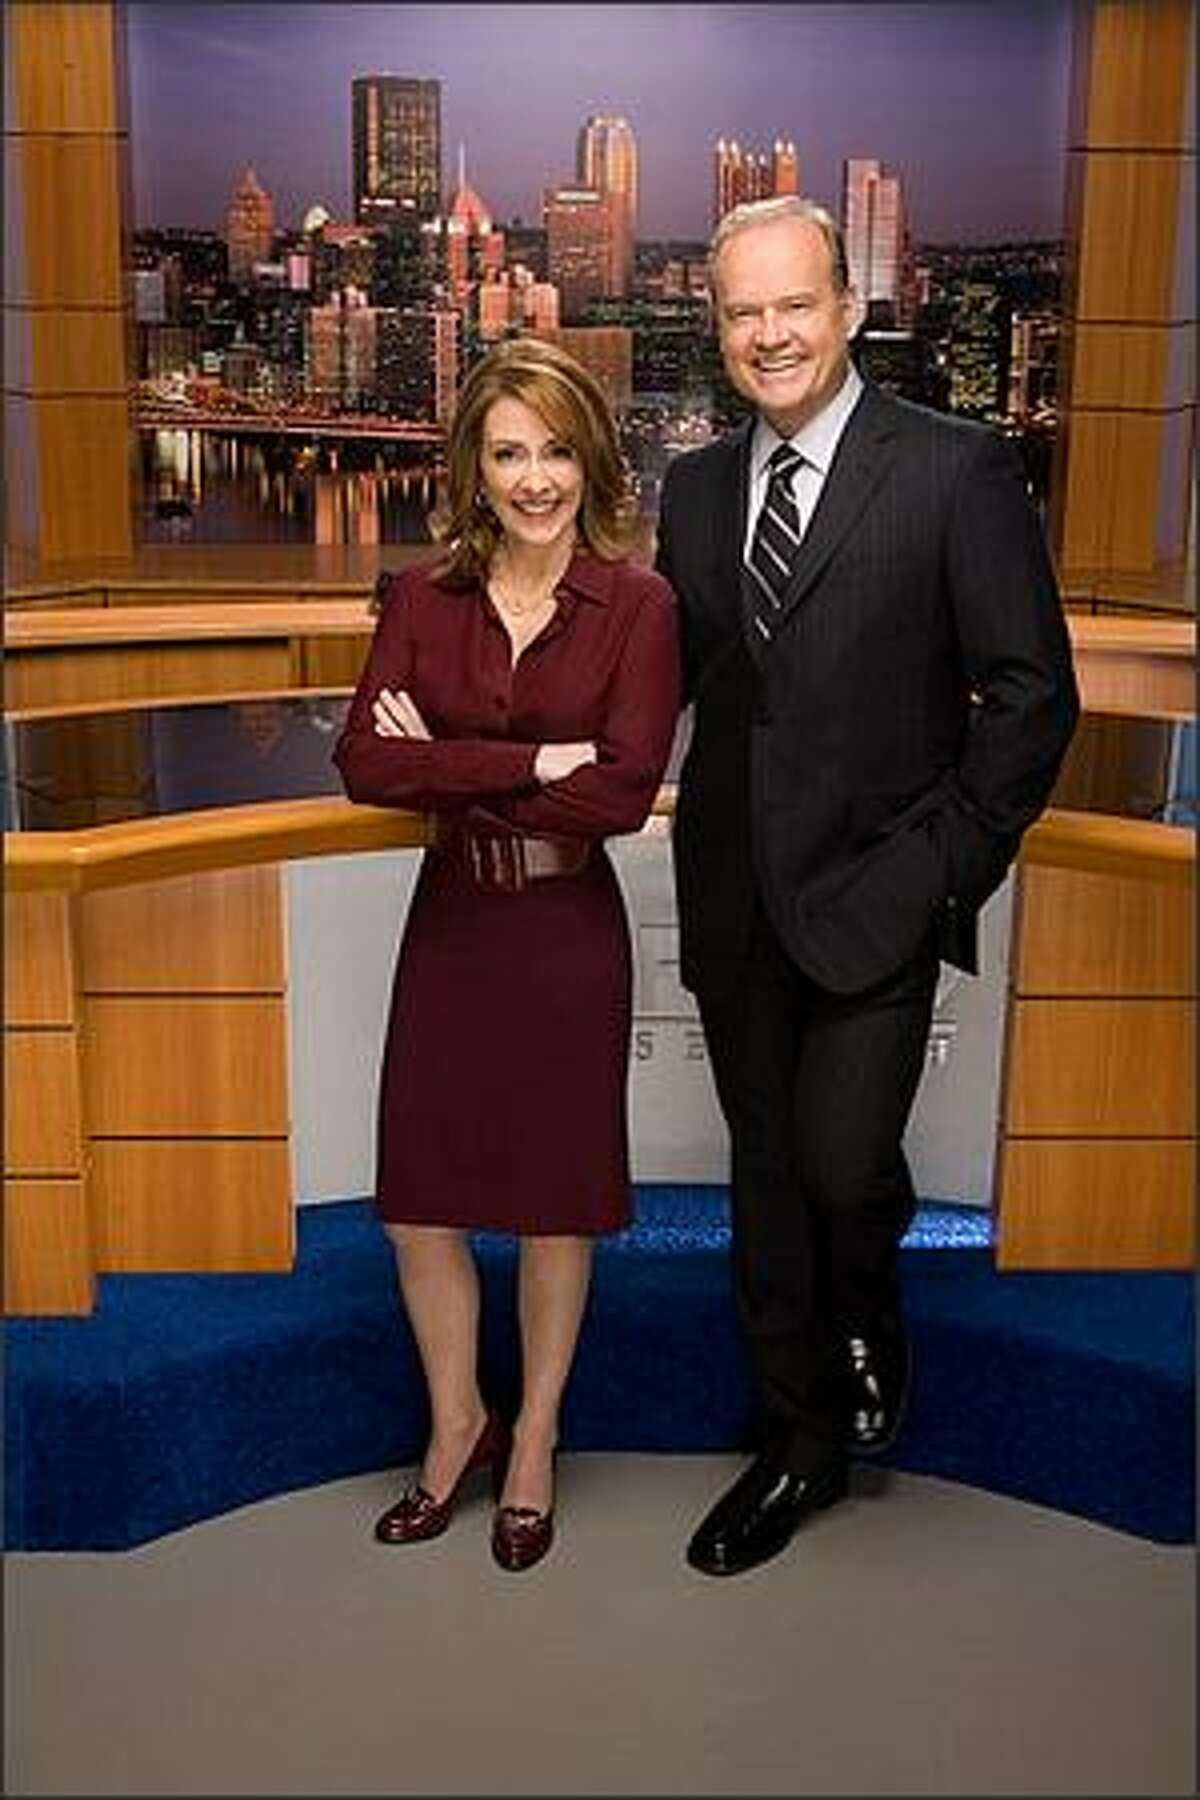 Kelsey Grammer, right, and Patricia Heaton play Pittsburgh news anchors in